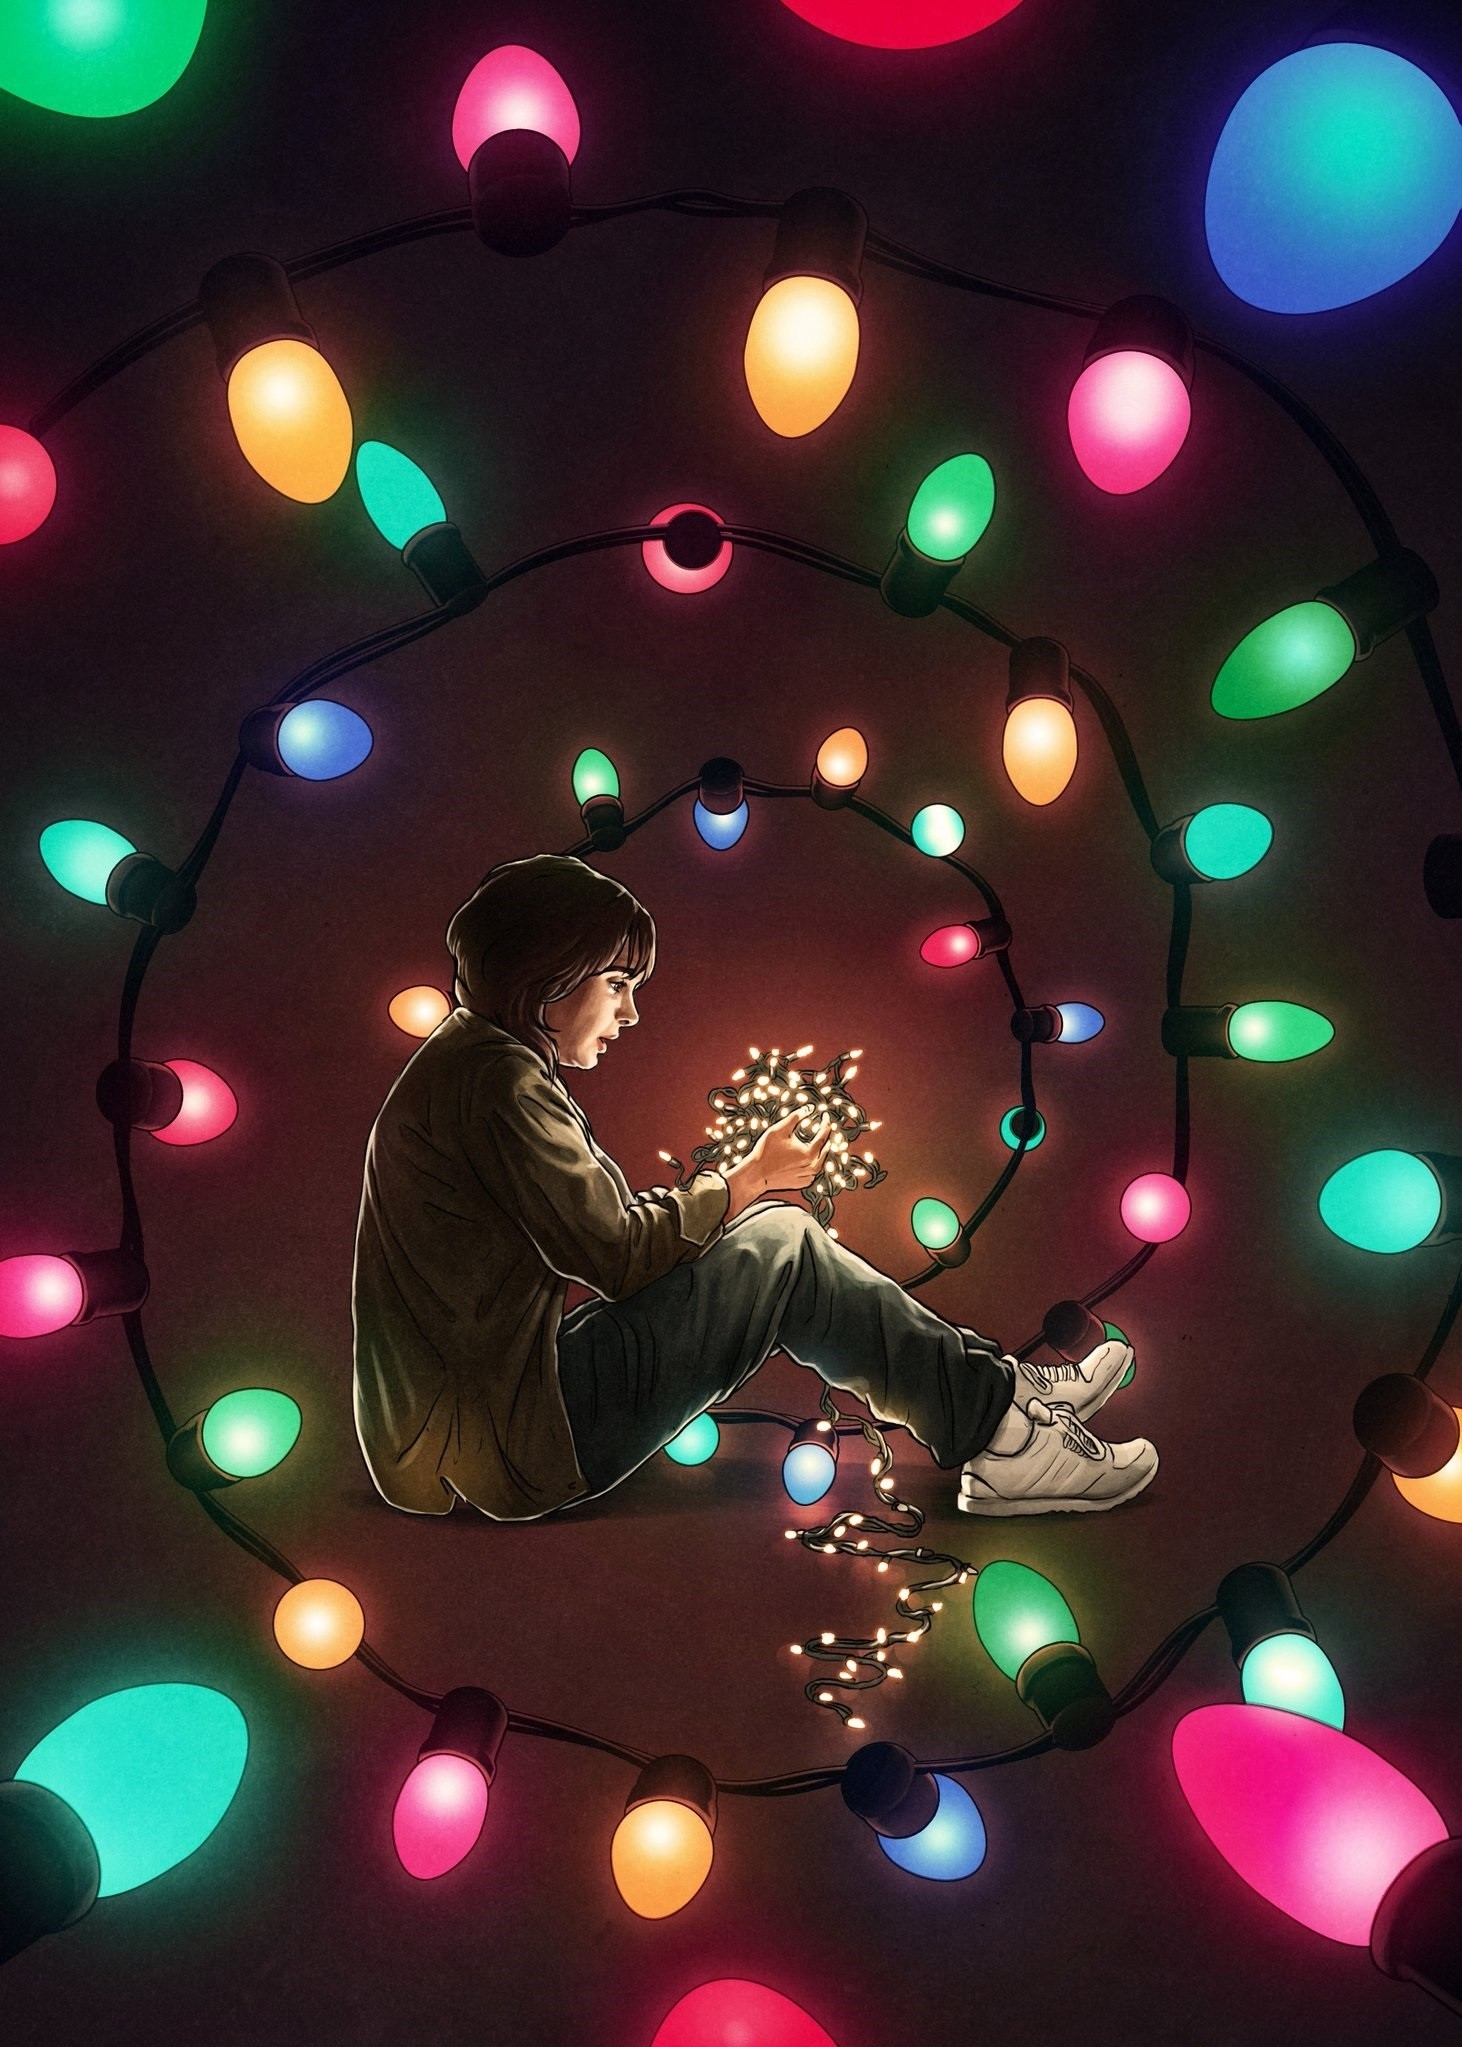 stranger things, colorful, lights, artwork, netflix wallpapers hd